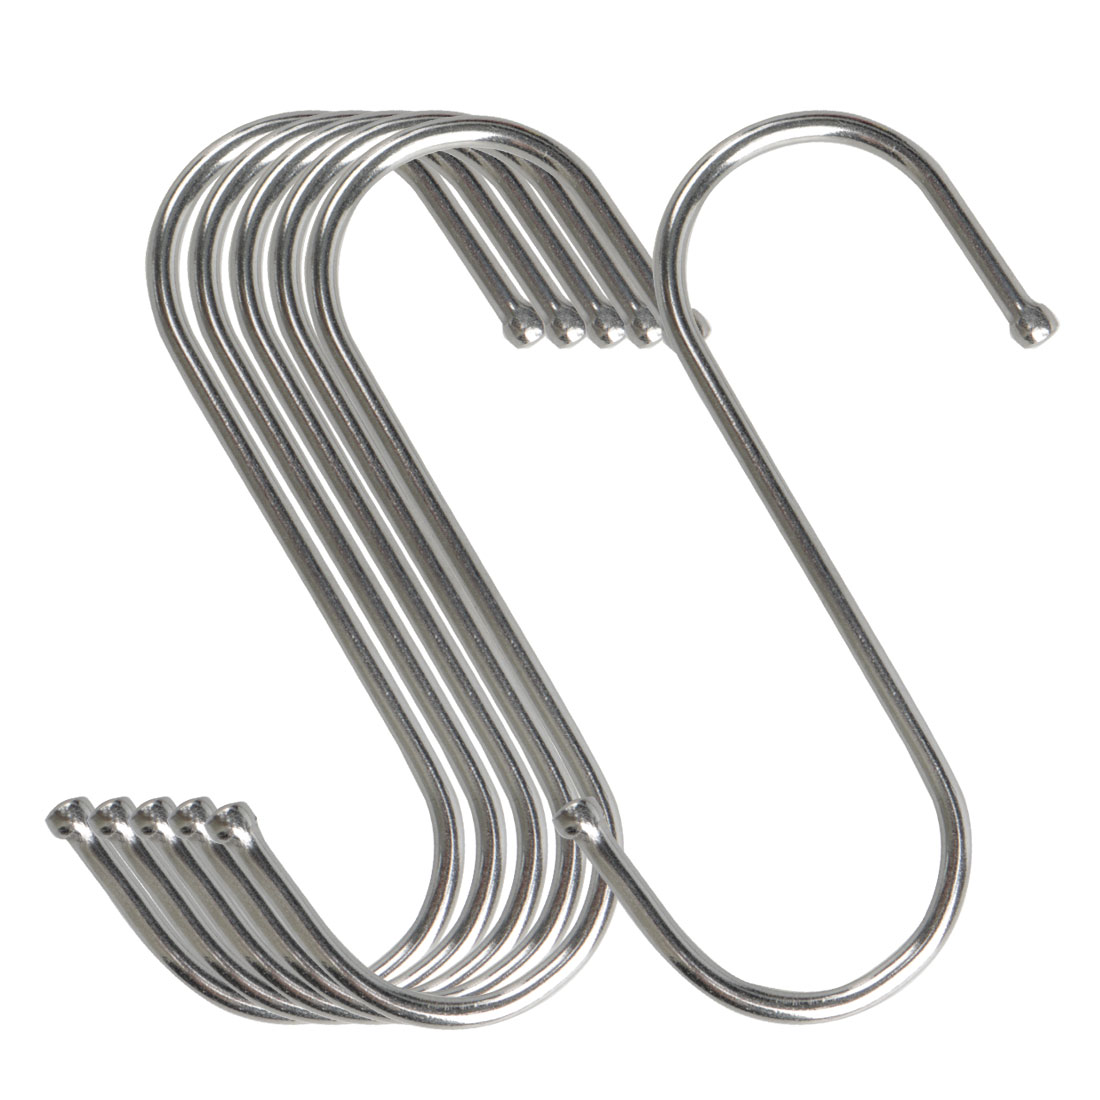 6pcs S Shaped Hook Stainless Steel for Kitchenware Pot Utensil Holder